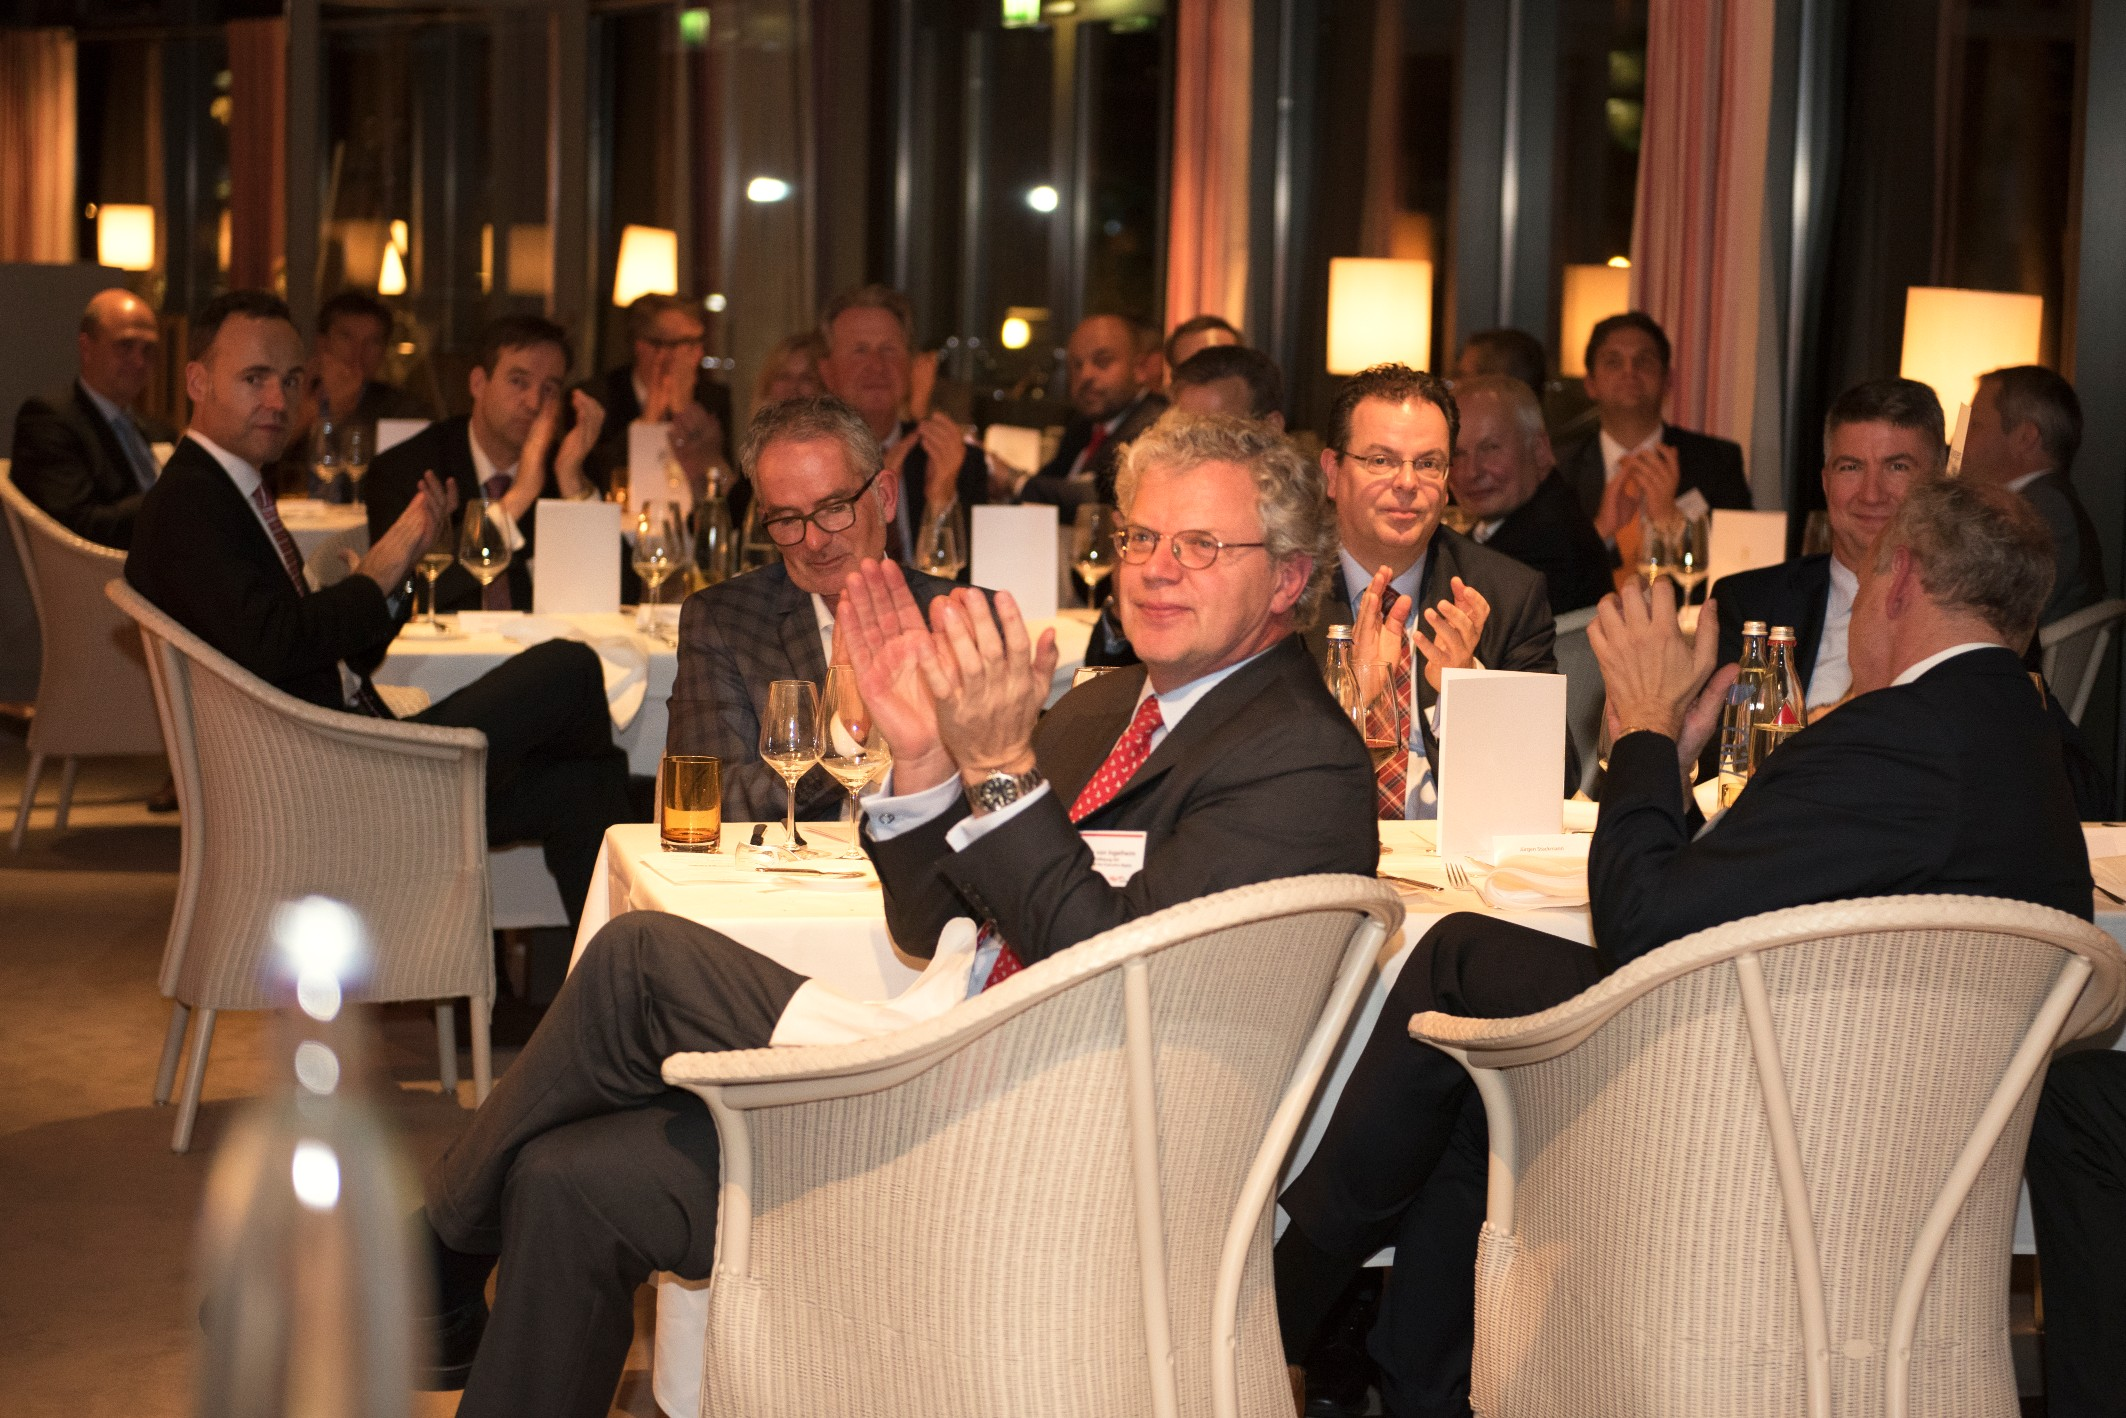 An evening to enjoy and share thoughts about the future of automotive digitalization.